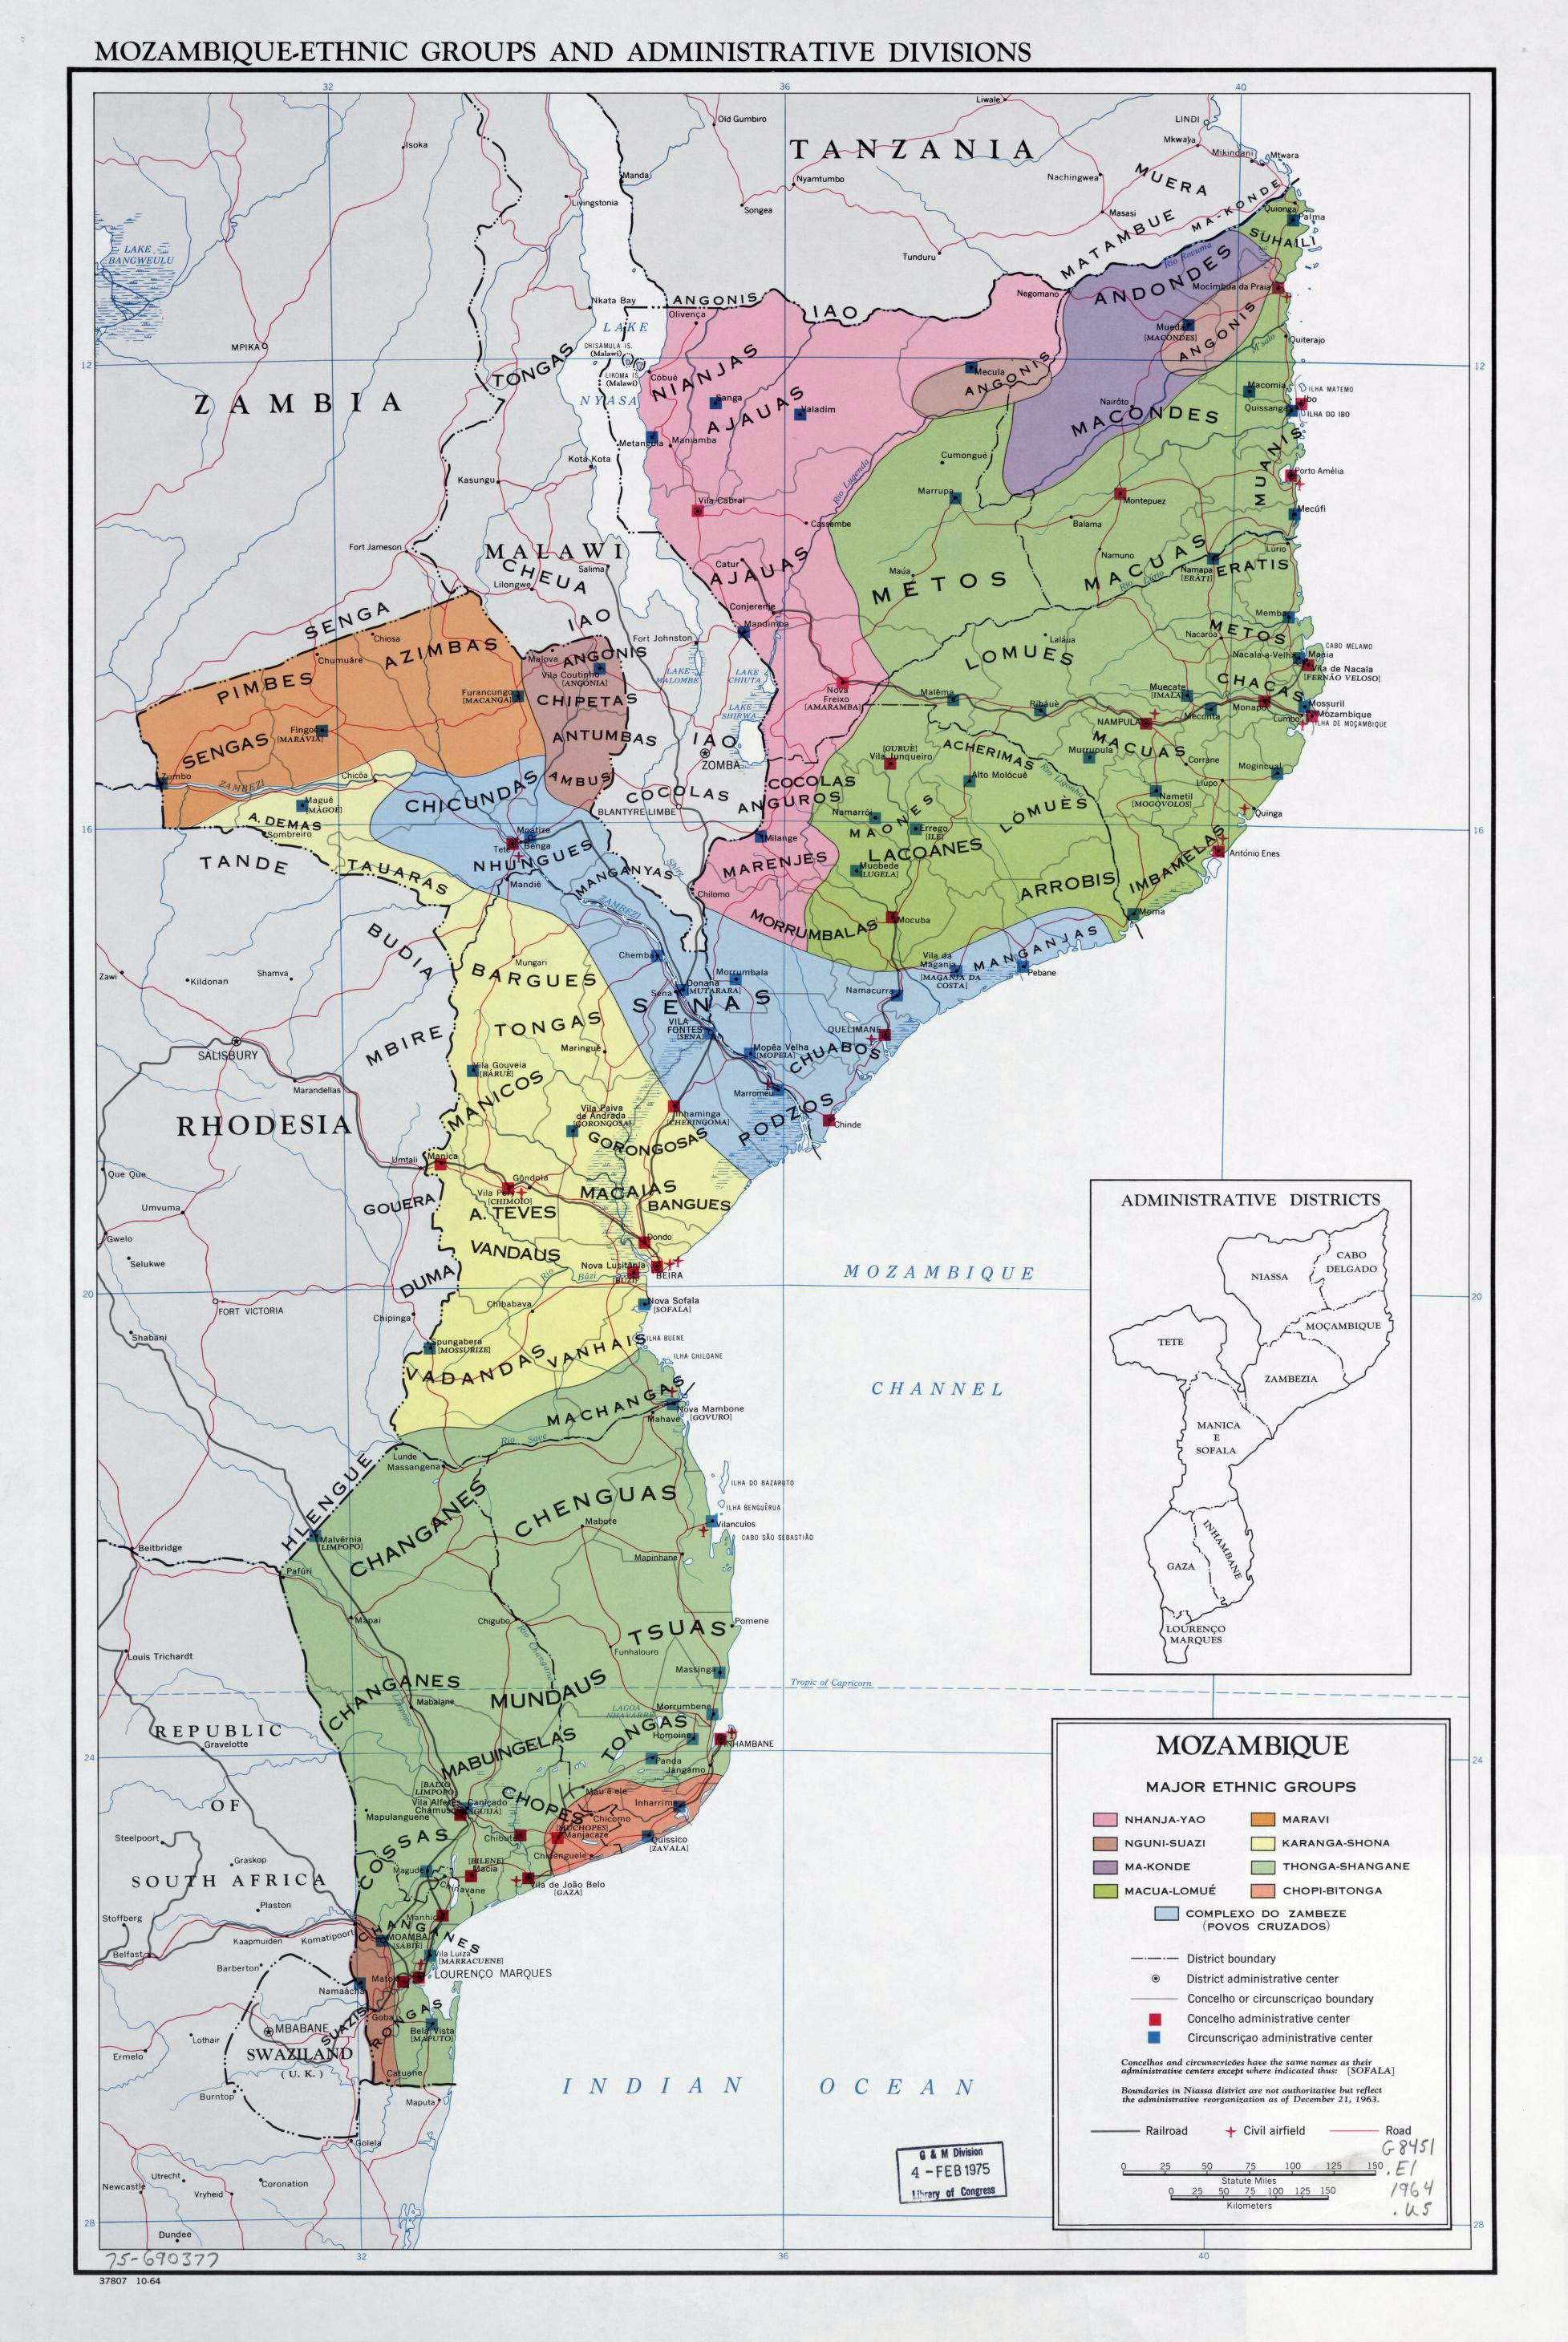 Ethnic groups in africa choice image diagram writing sample large detailed map of mozambique ethnic groups and administrative large detailed map of mozambique ethnic groups sciox Choice Image